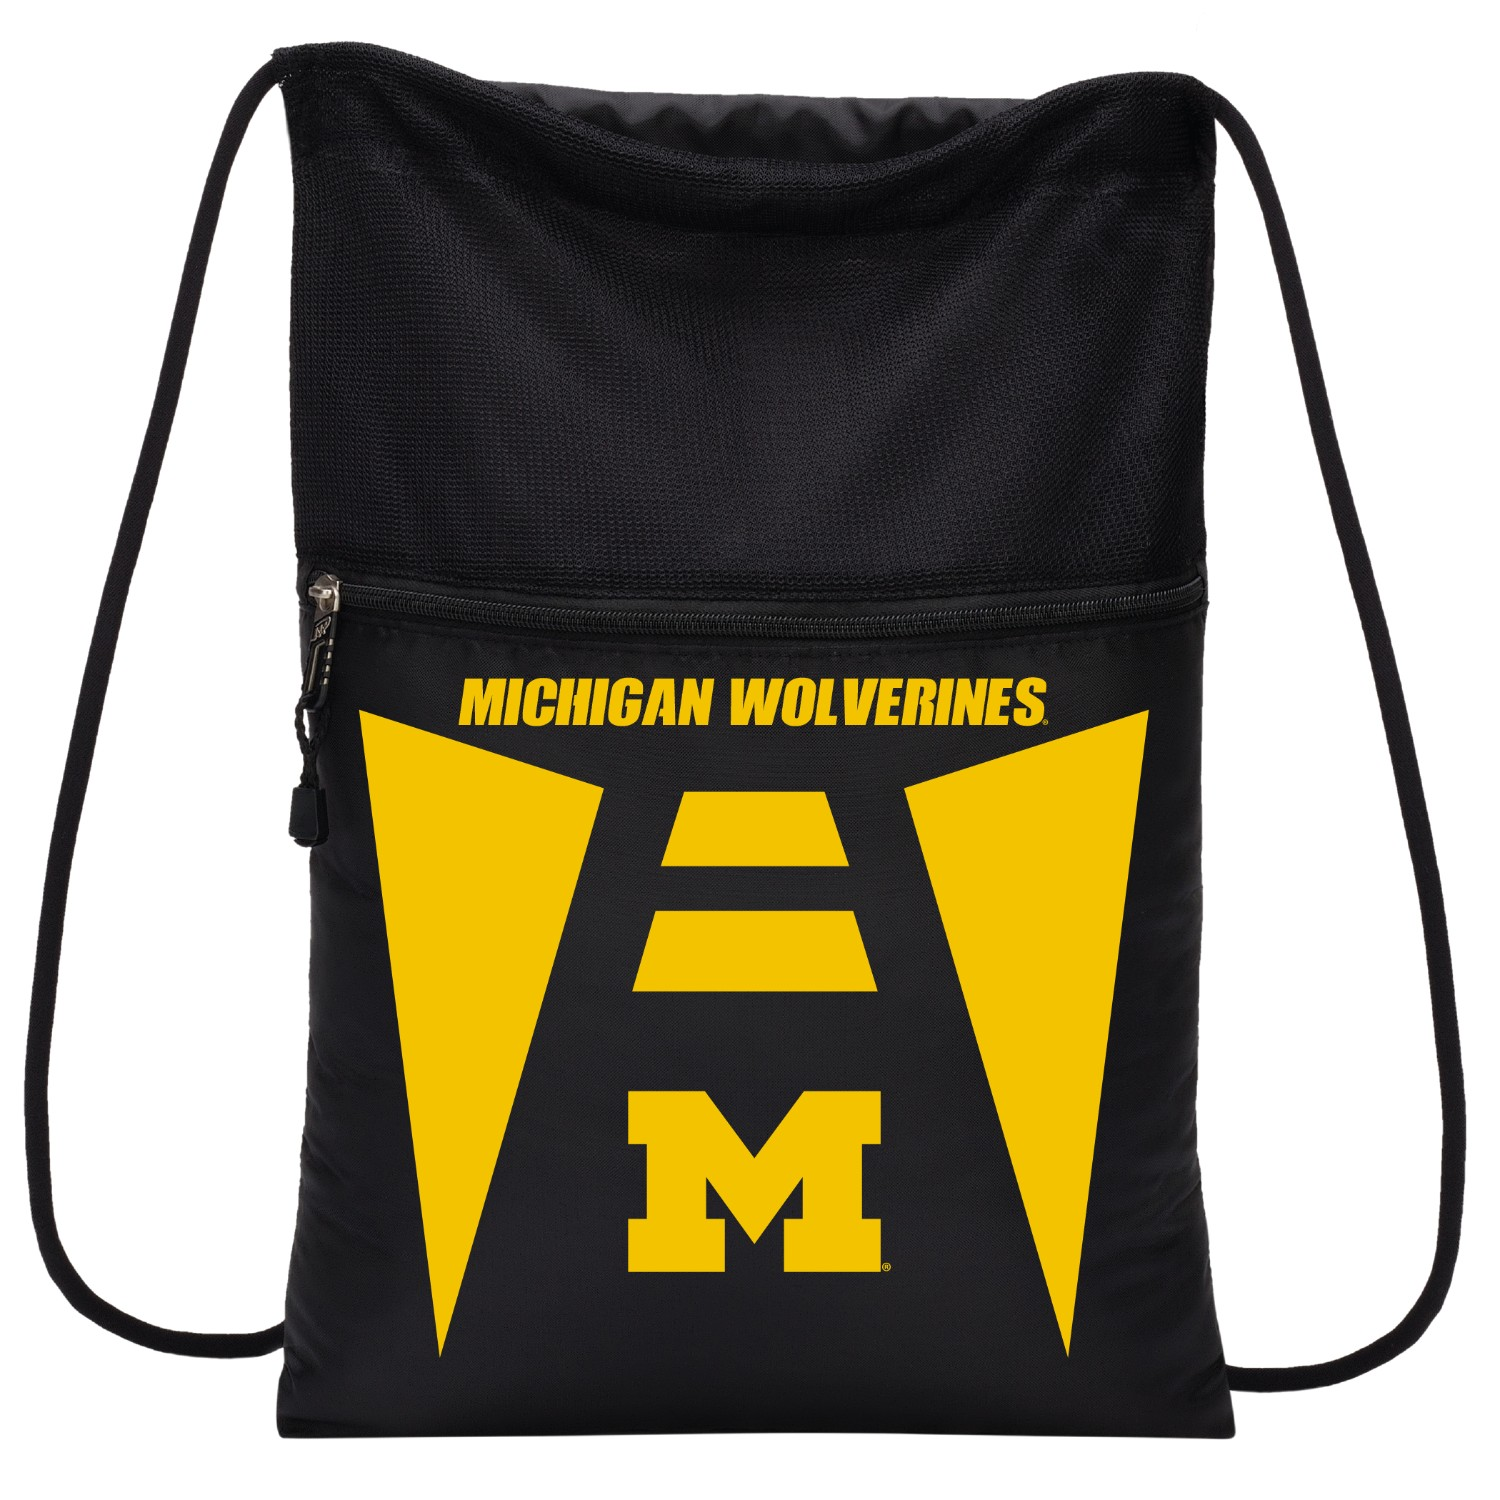 Michigan Wolverines Team Tech Backsack